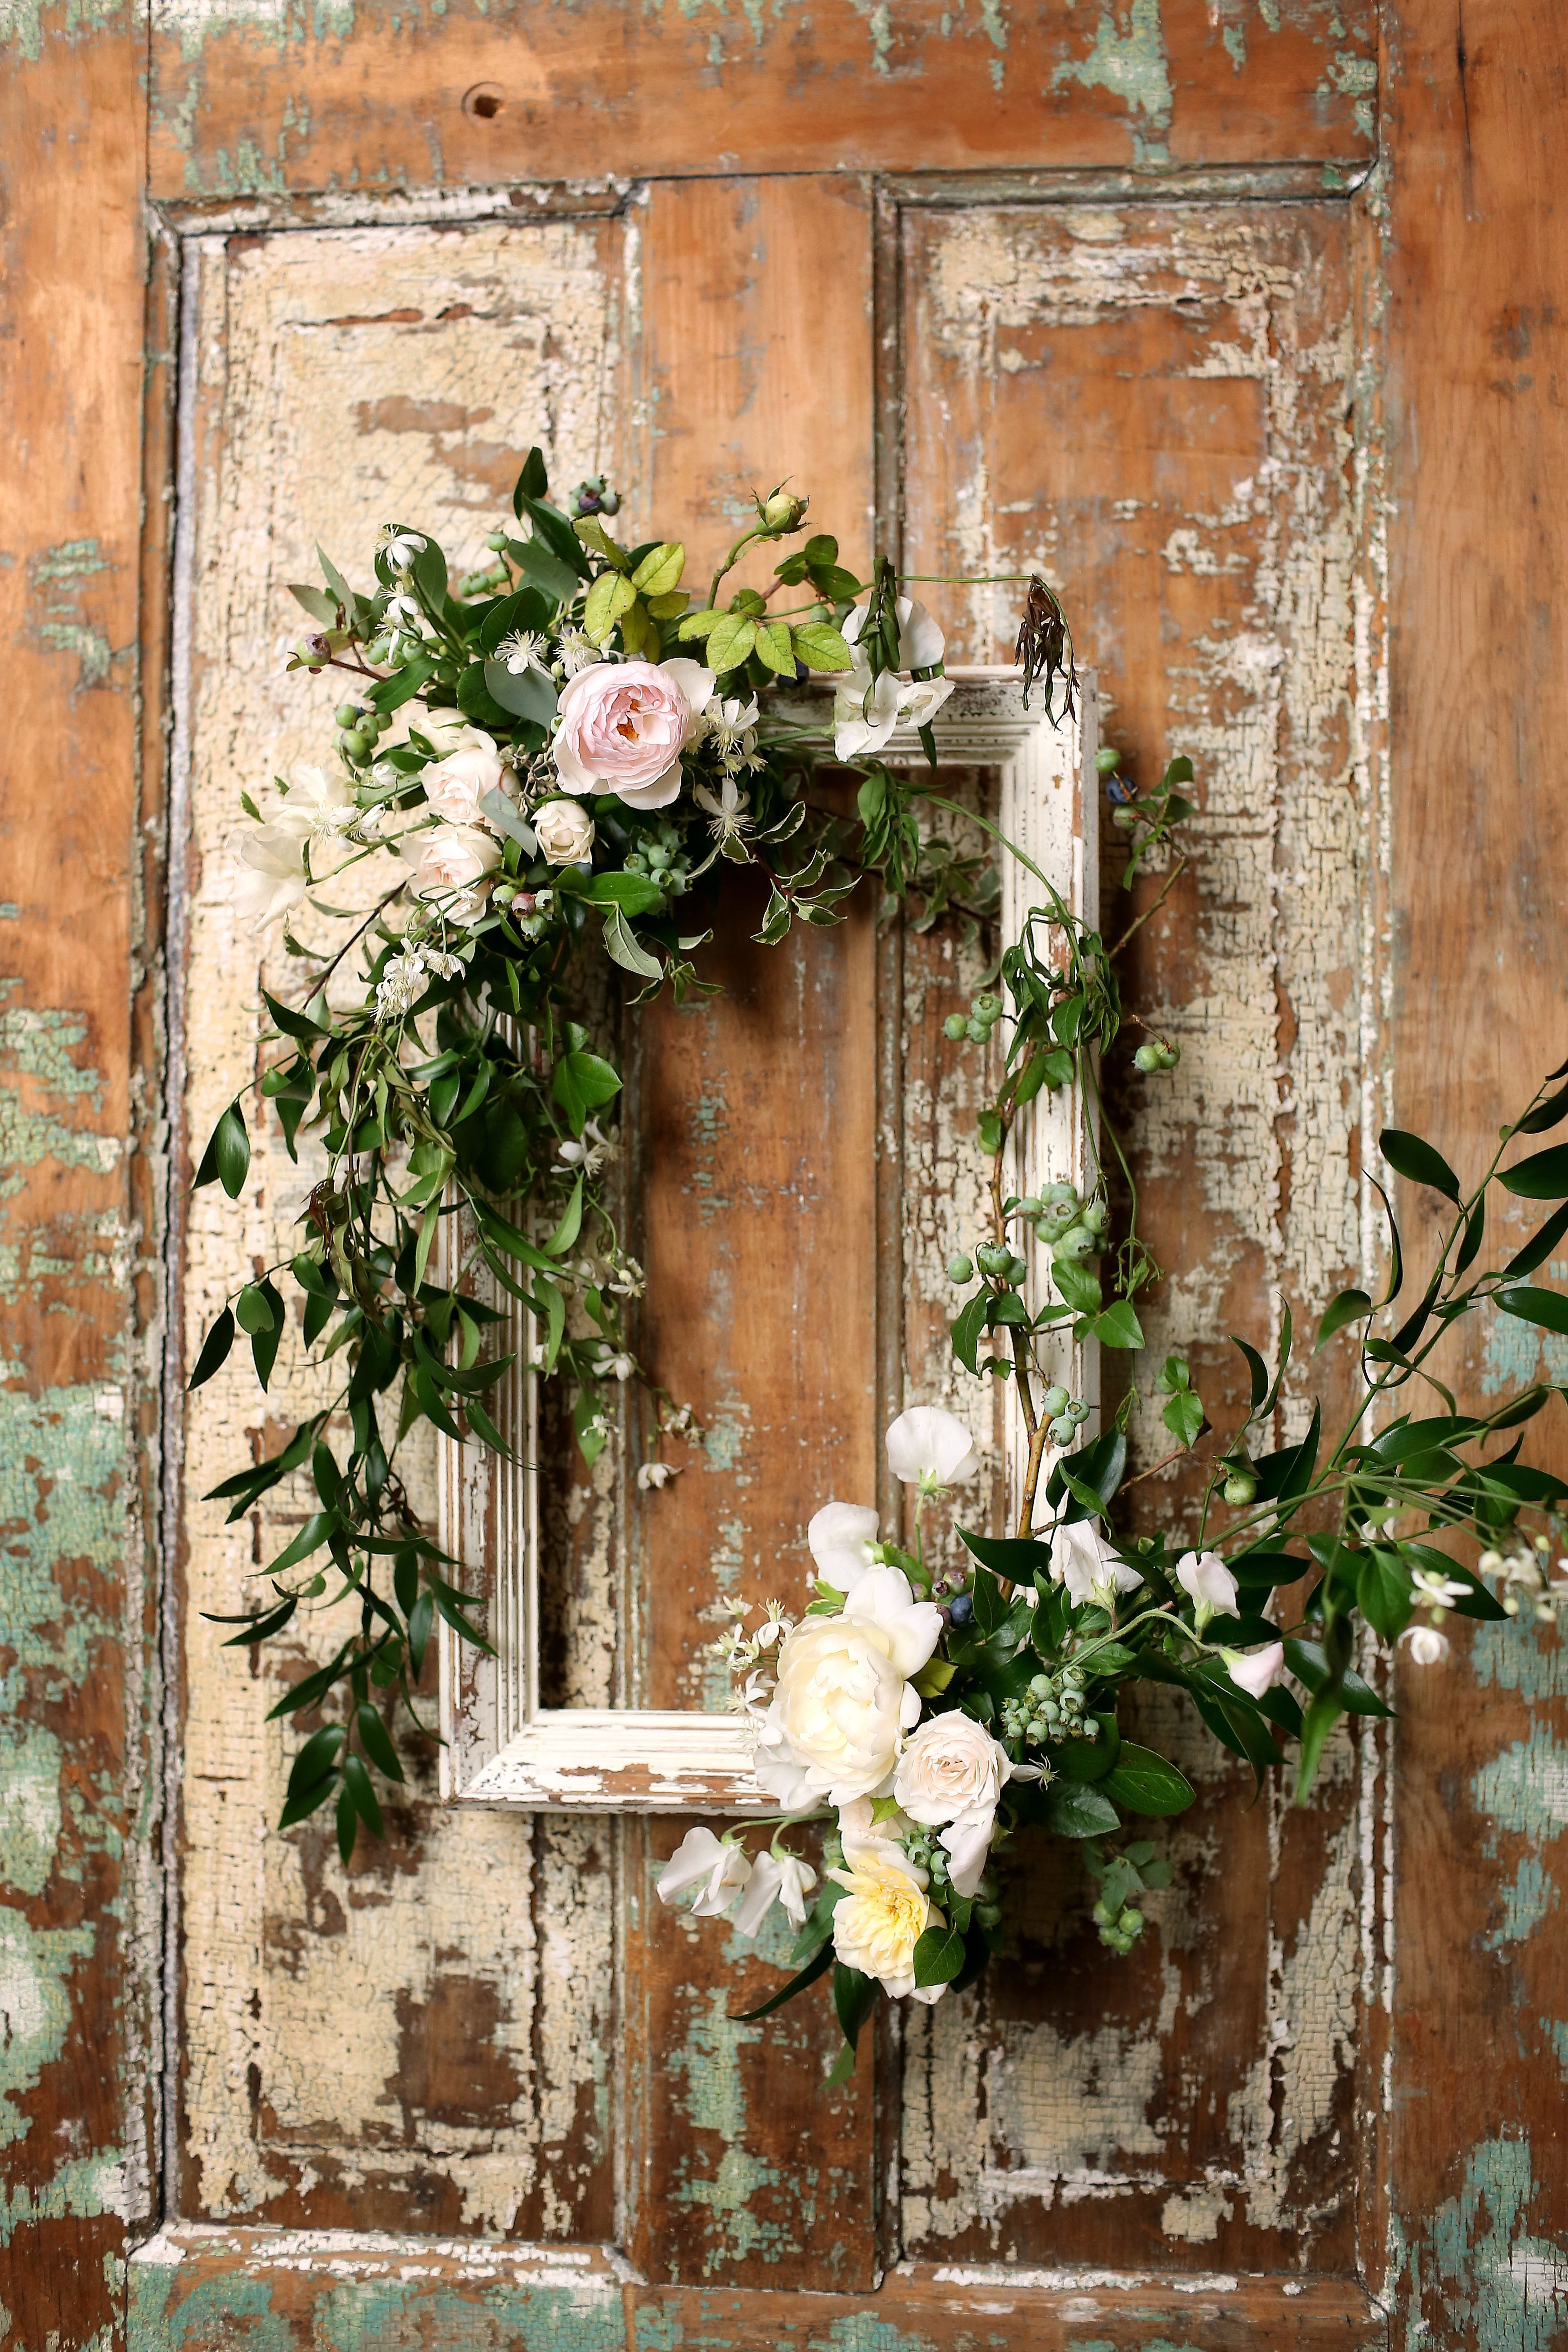 Best And Newest Floral Wreath Wood Framed Wall Decor For Wooden Frame With Vines And Pink Roses (View 4 of 20)